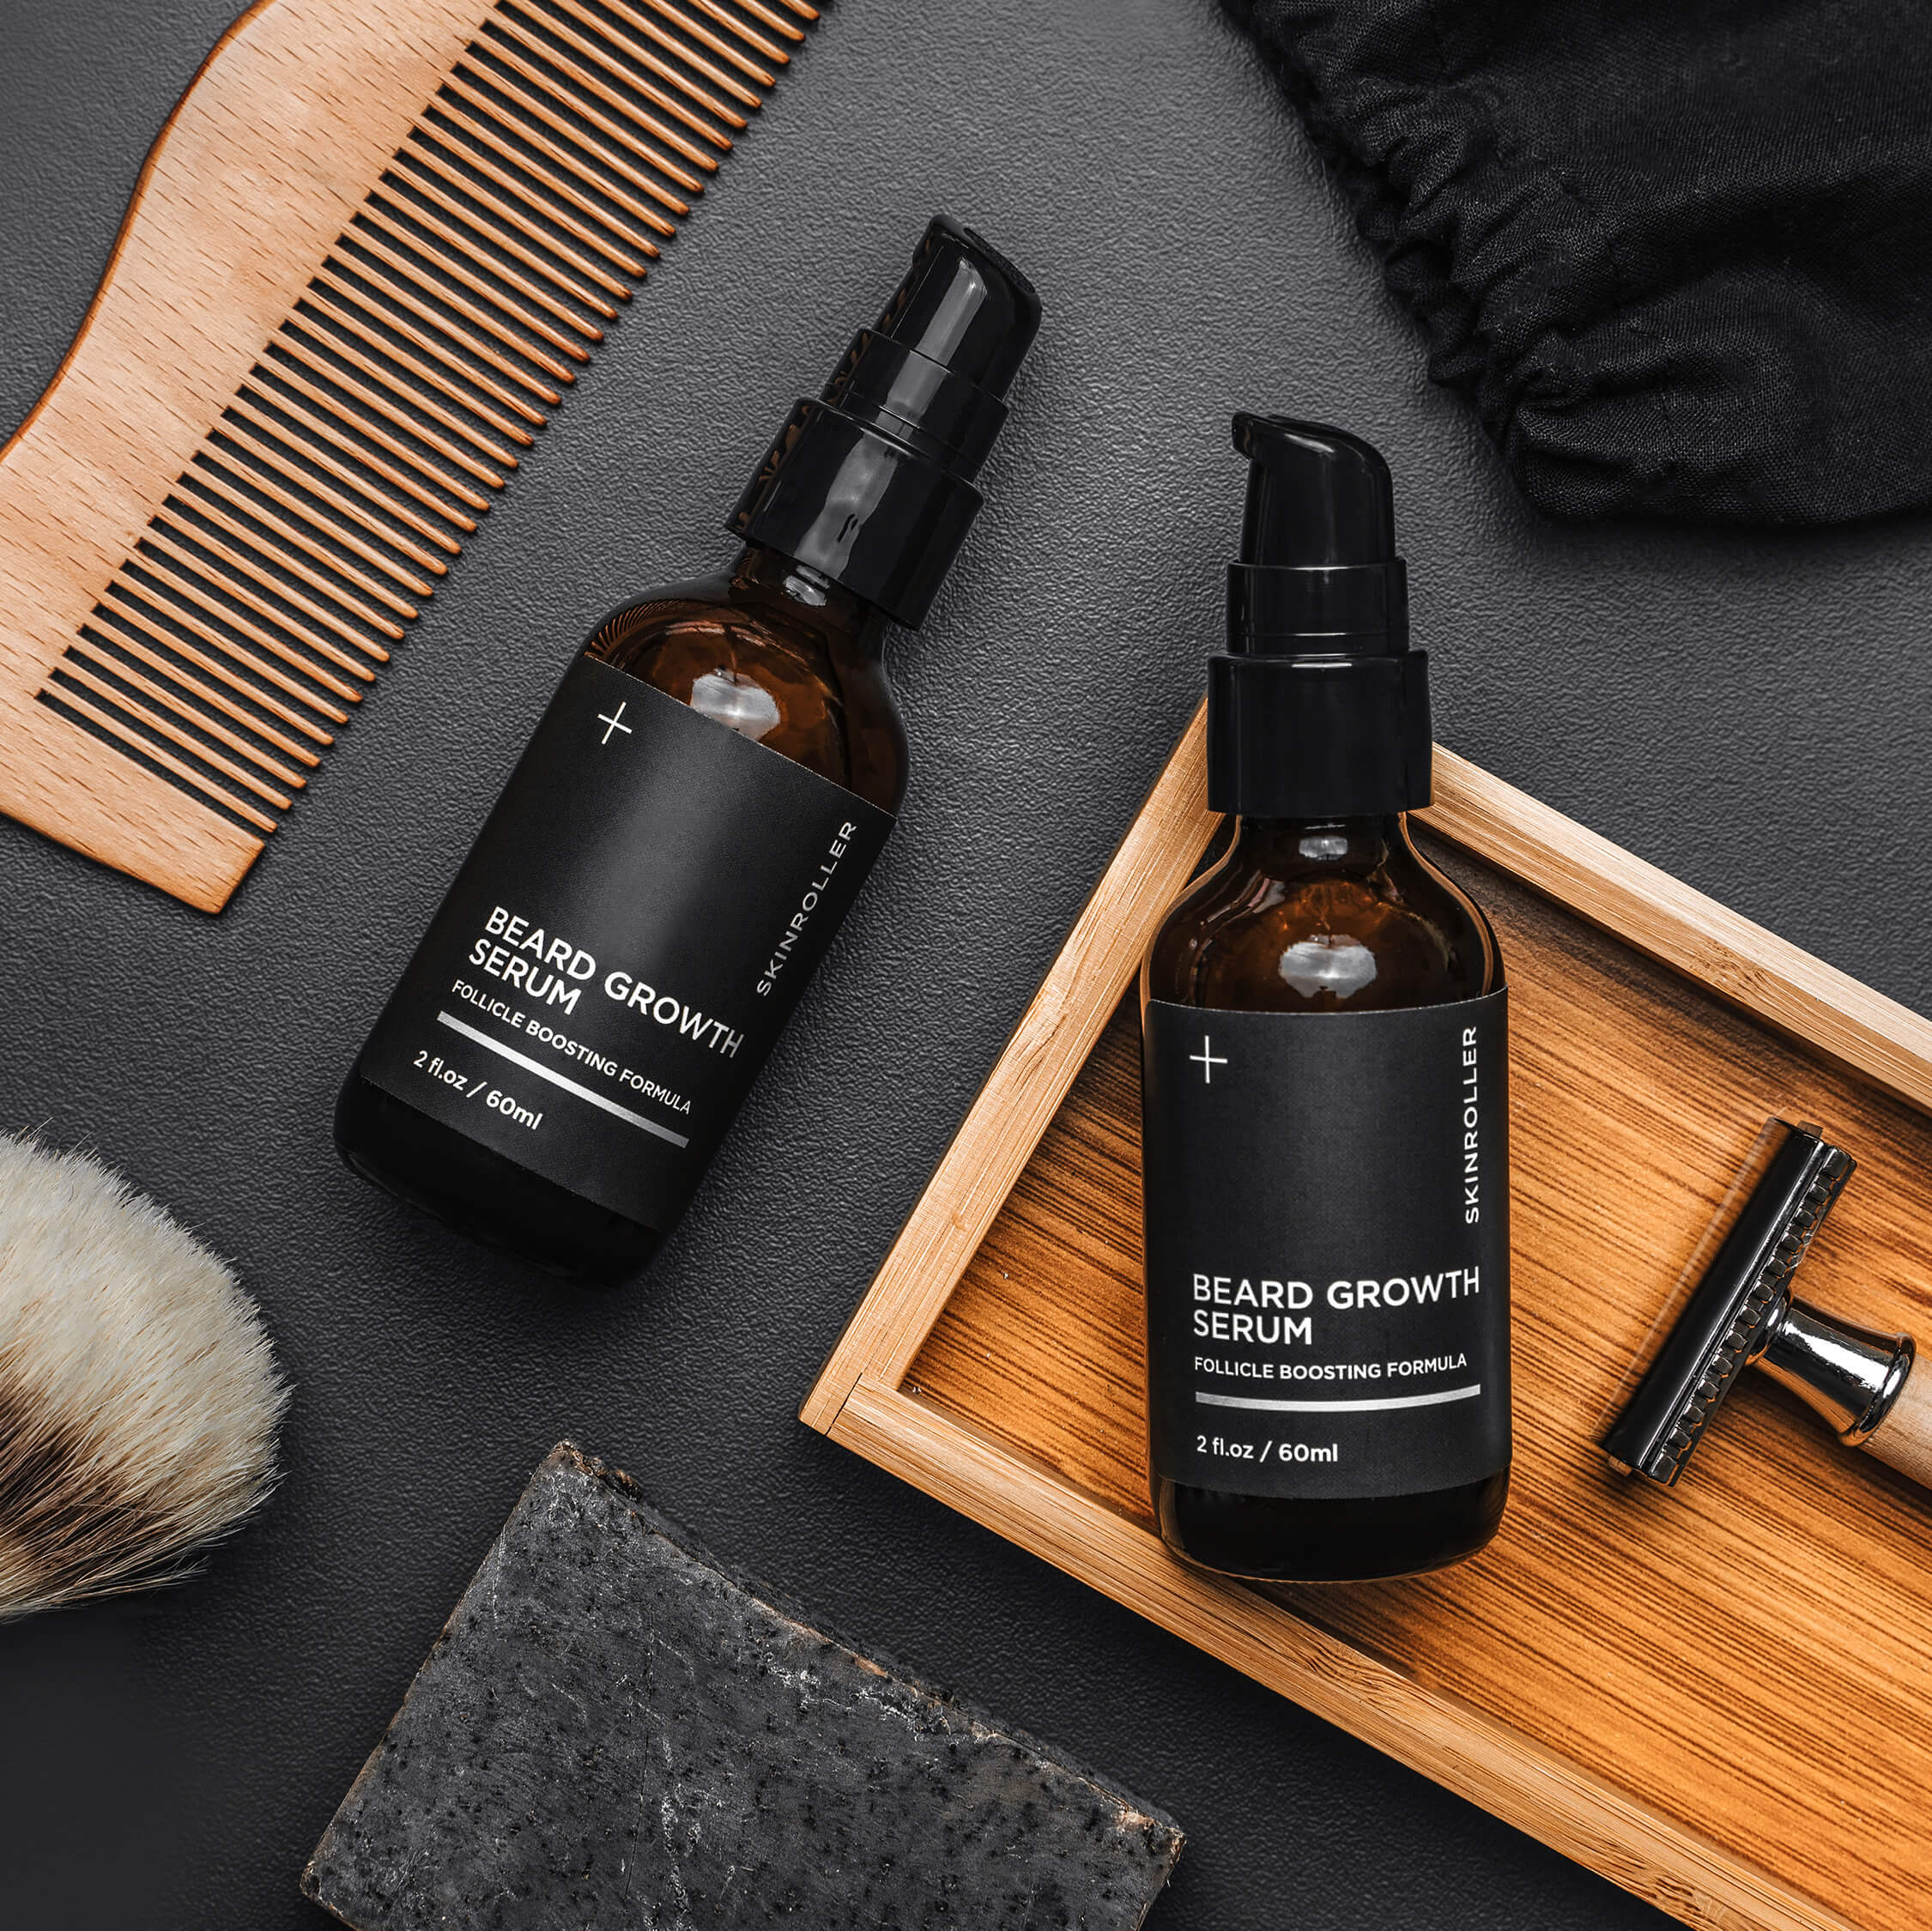 Beard Growth Serum